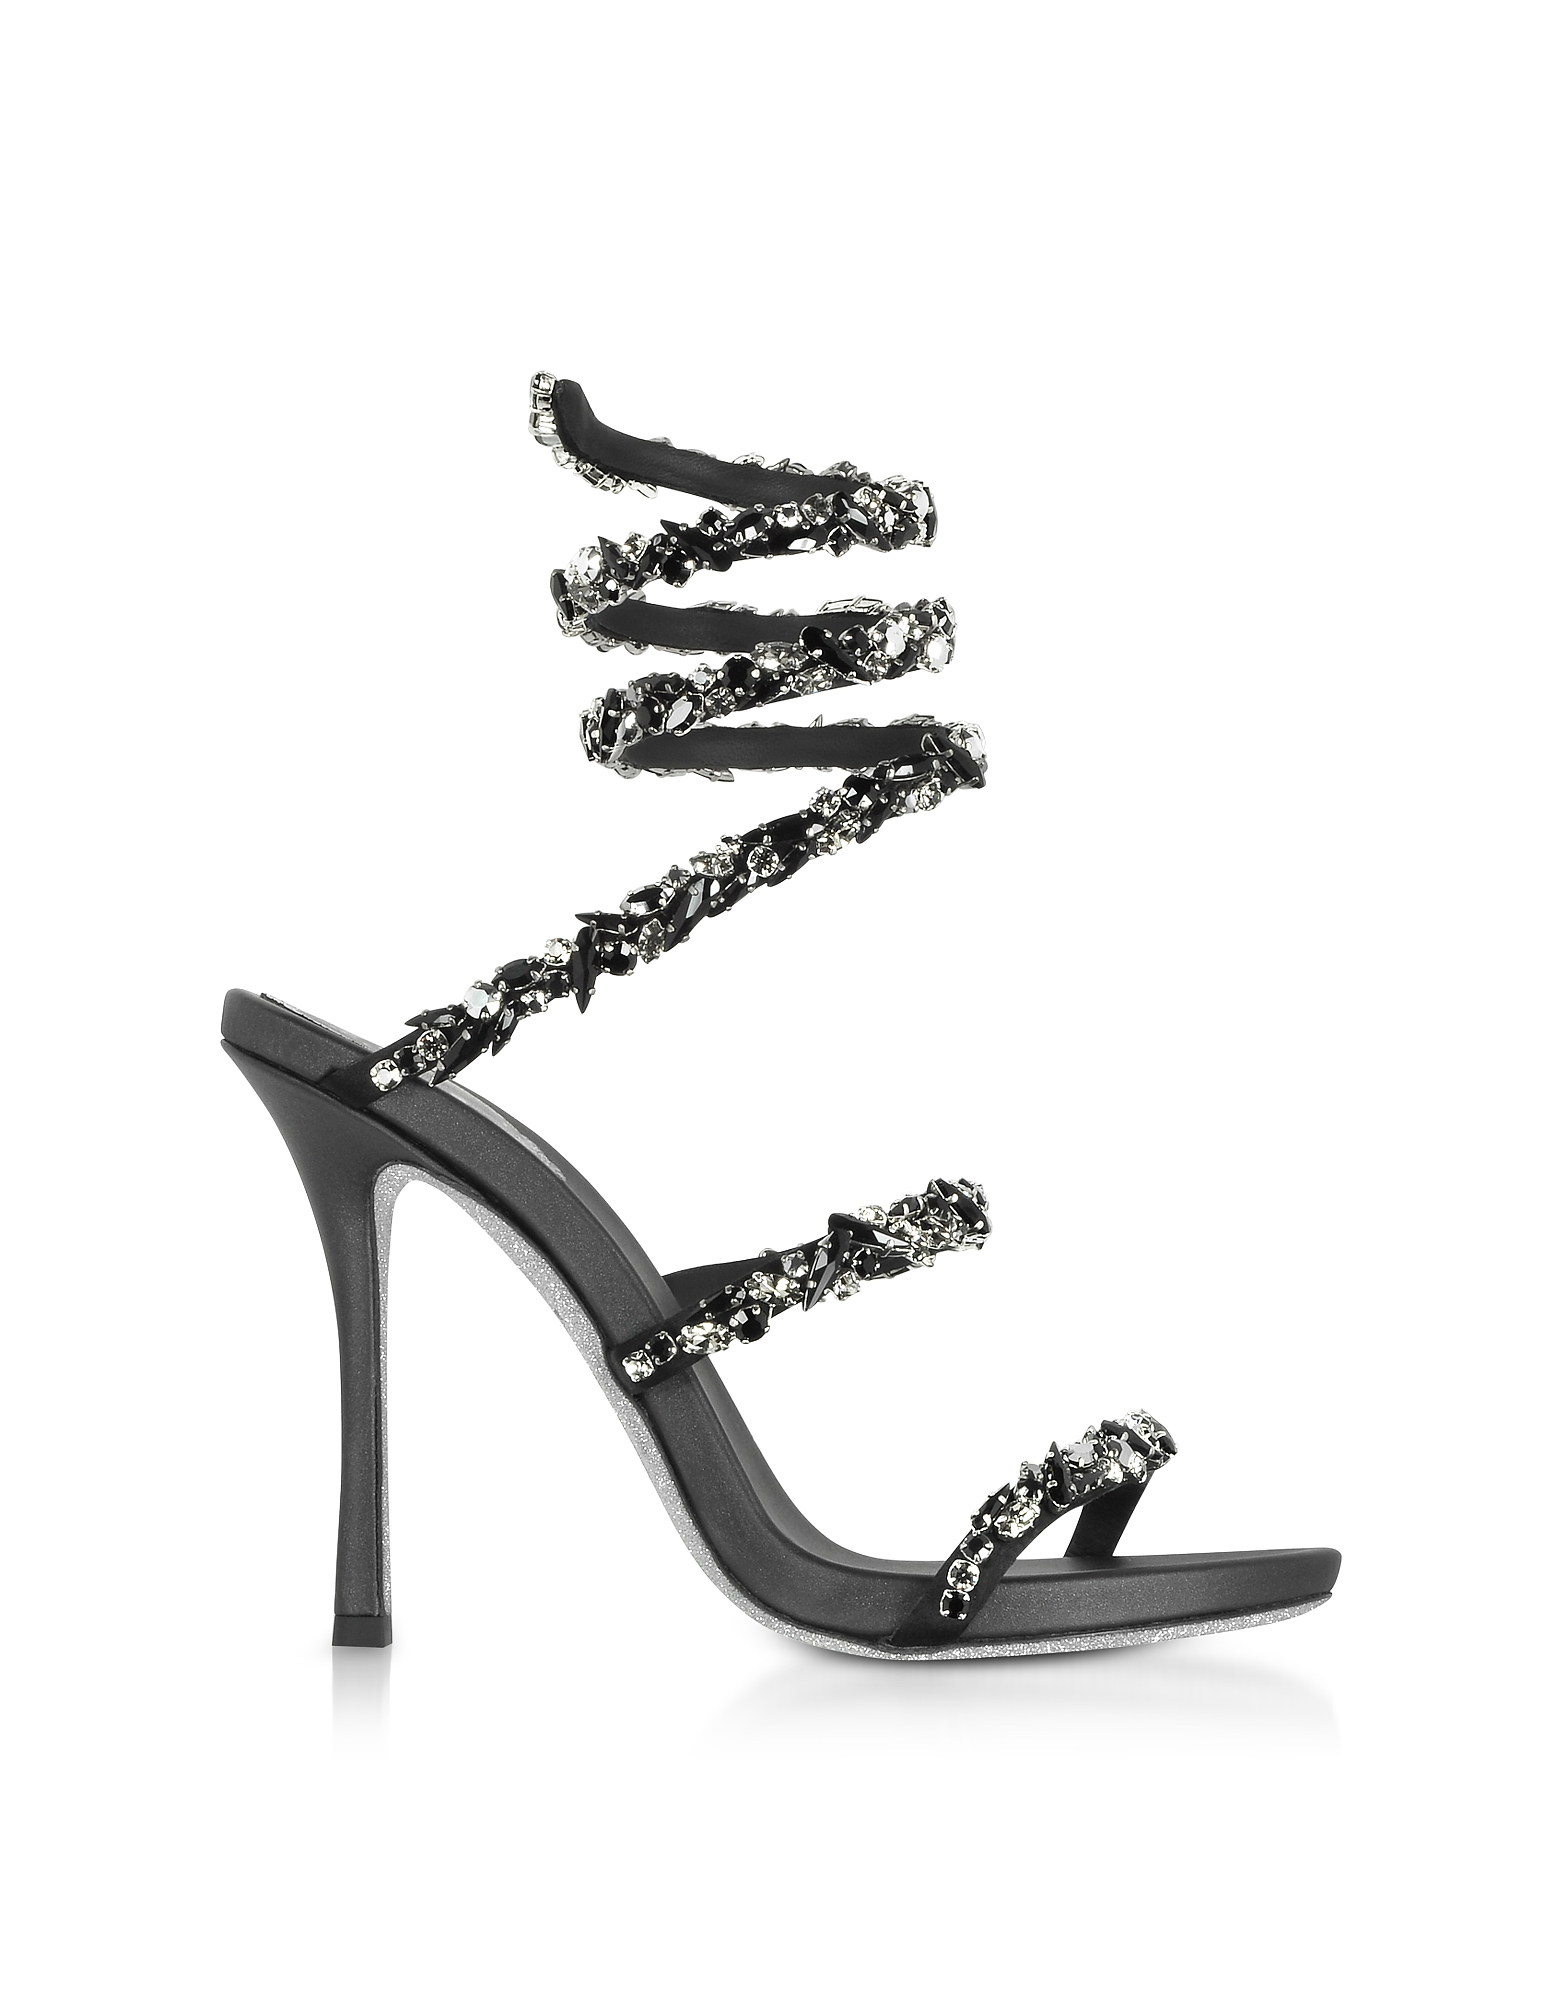 Rene Caovilla Shoes, Black Satin and Black Crystals High Heel Sandals